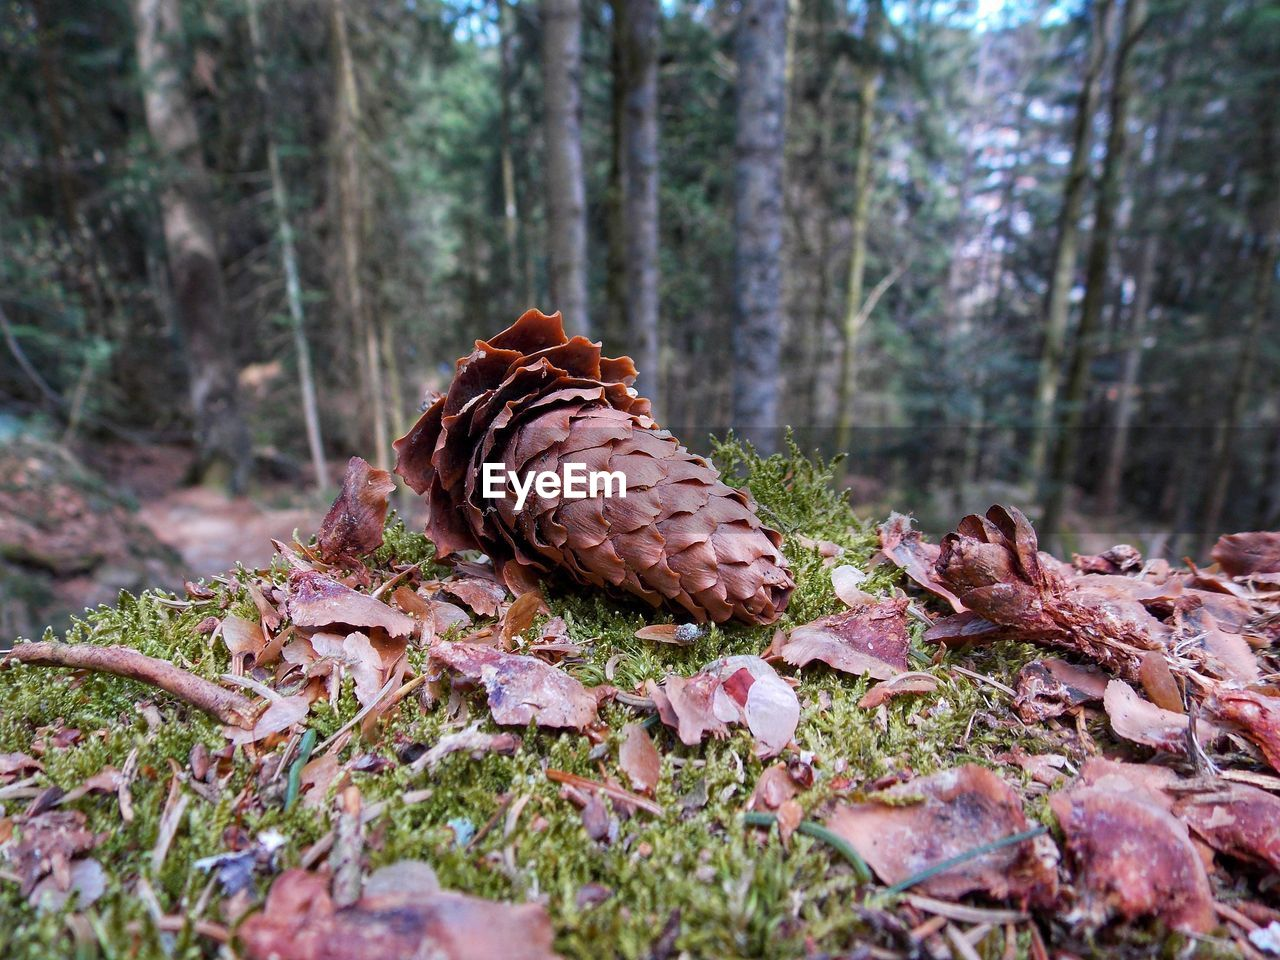 land, nature, forest, selective focus, close-up, day, plant, tree, no people, beauty in nature, pine cone, growth, plant part, outdoors, animal, one animal, leaf, woodland, tranquility, natural pattern, coniferous tree